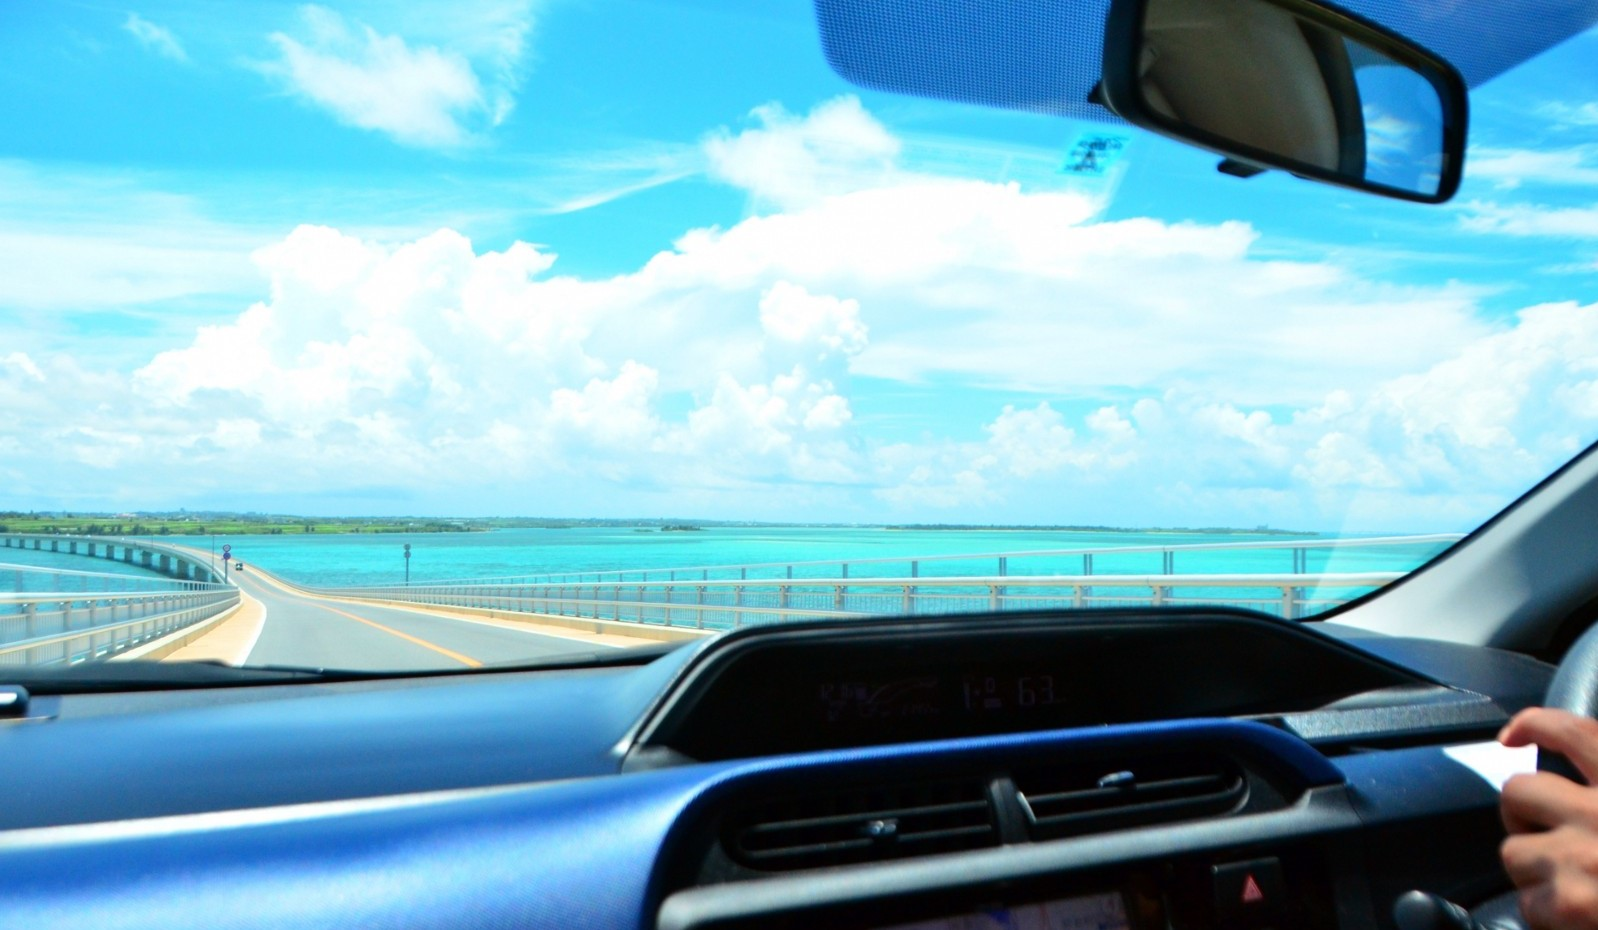 Driving on the bridge across the ocean in Okinawa